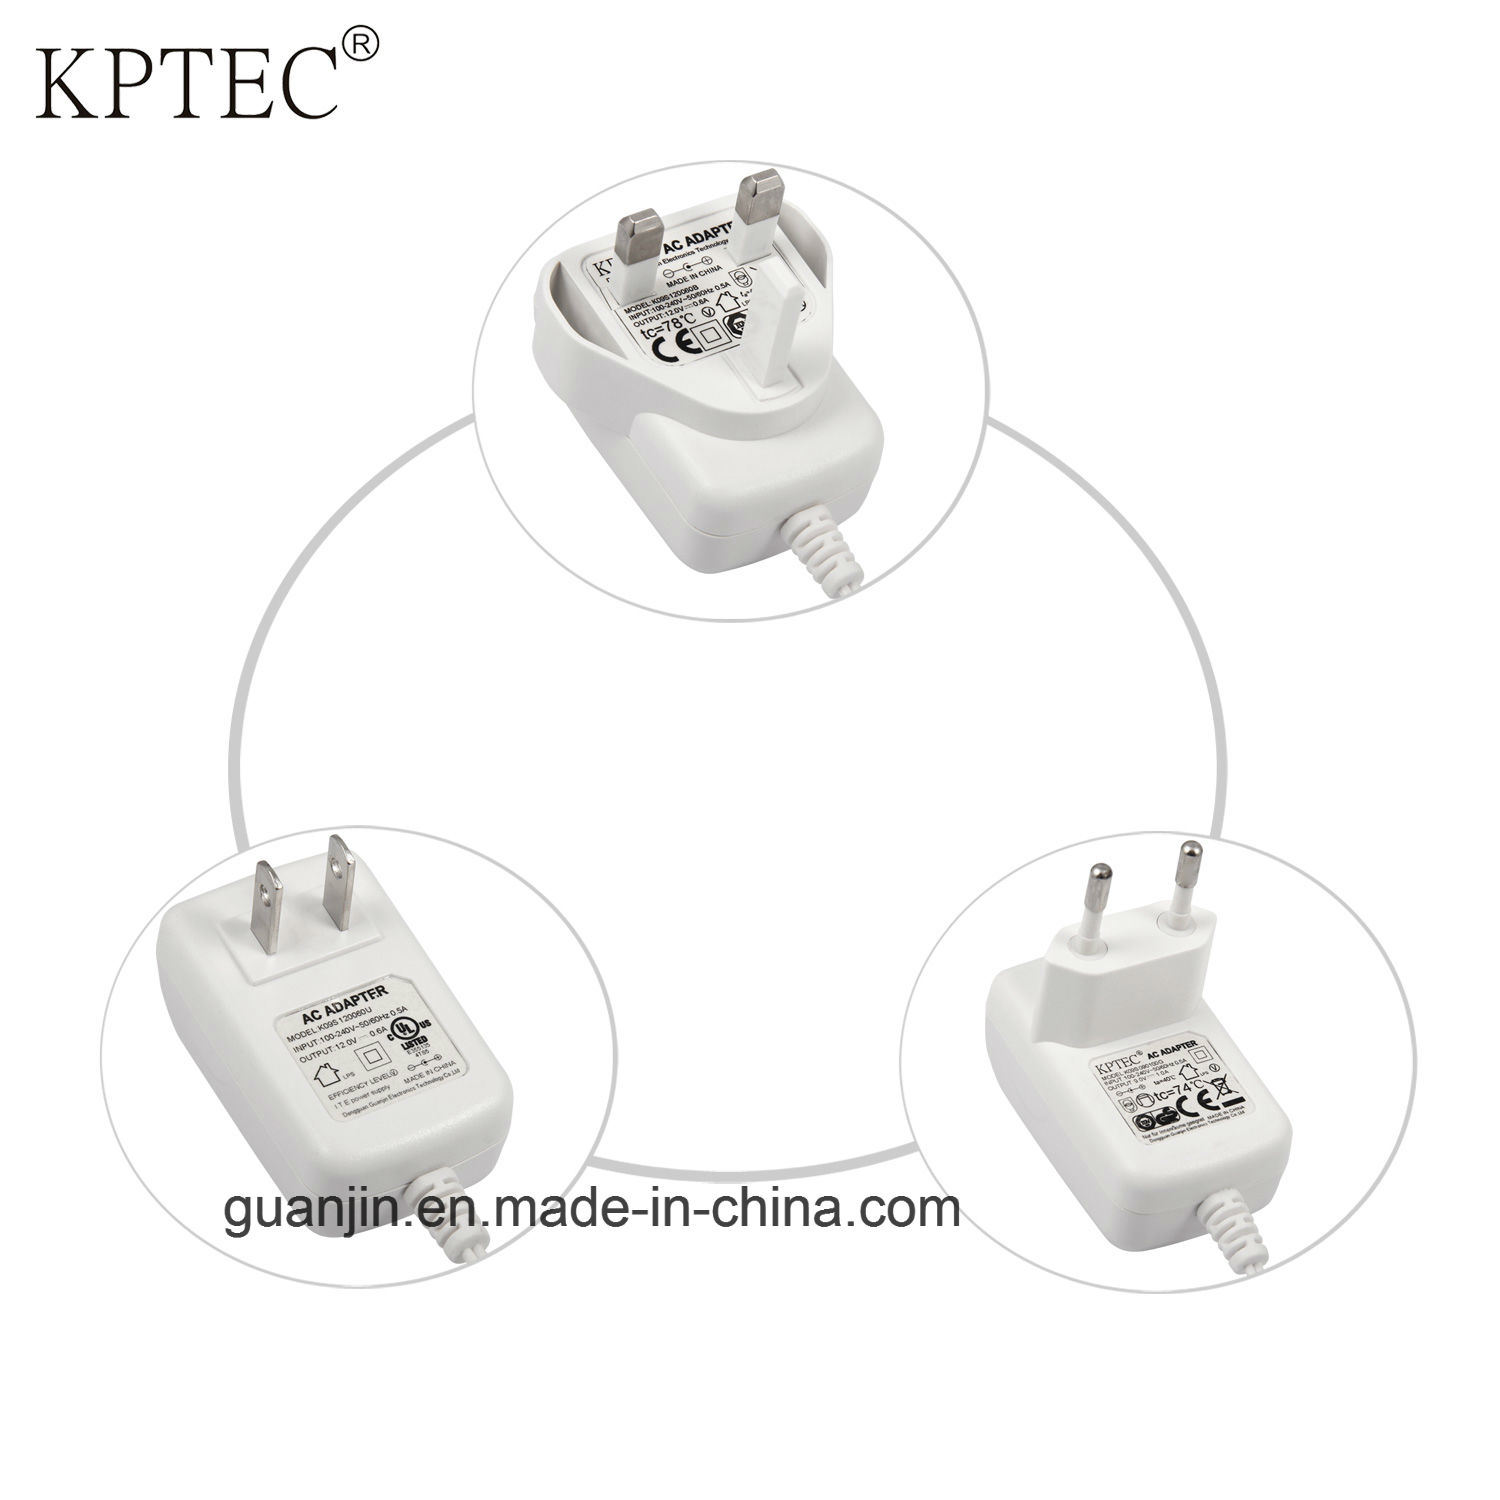 Switching Adapter with Ce Certificate for Small Home Appliance